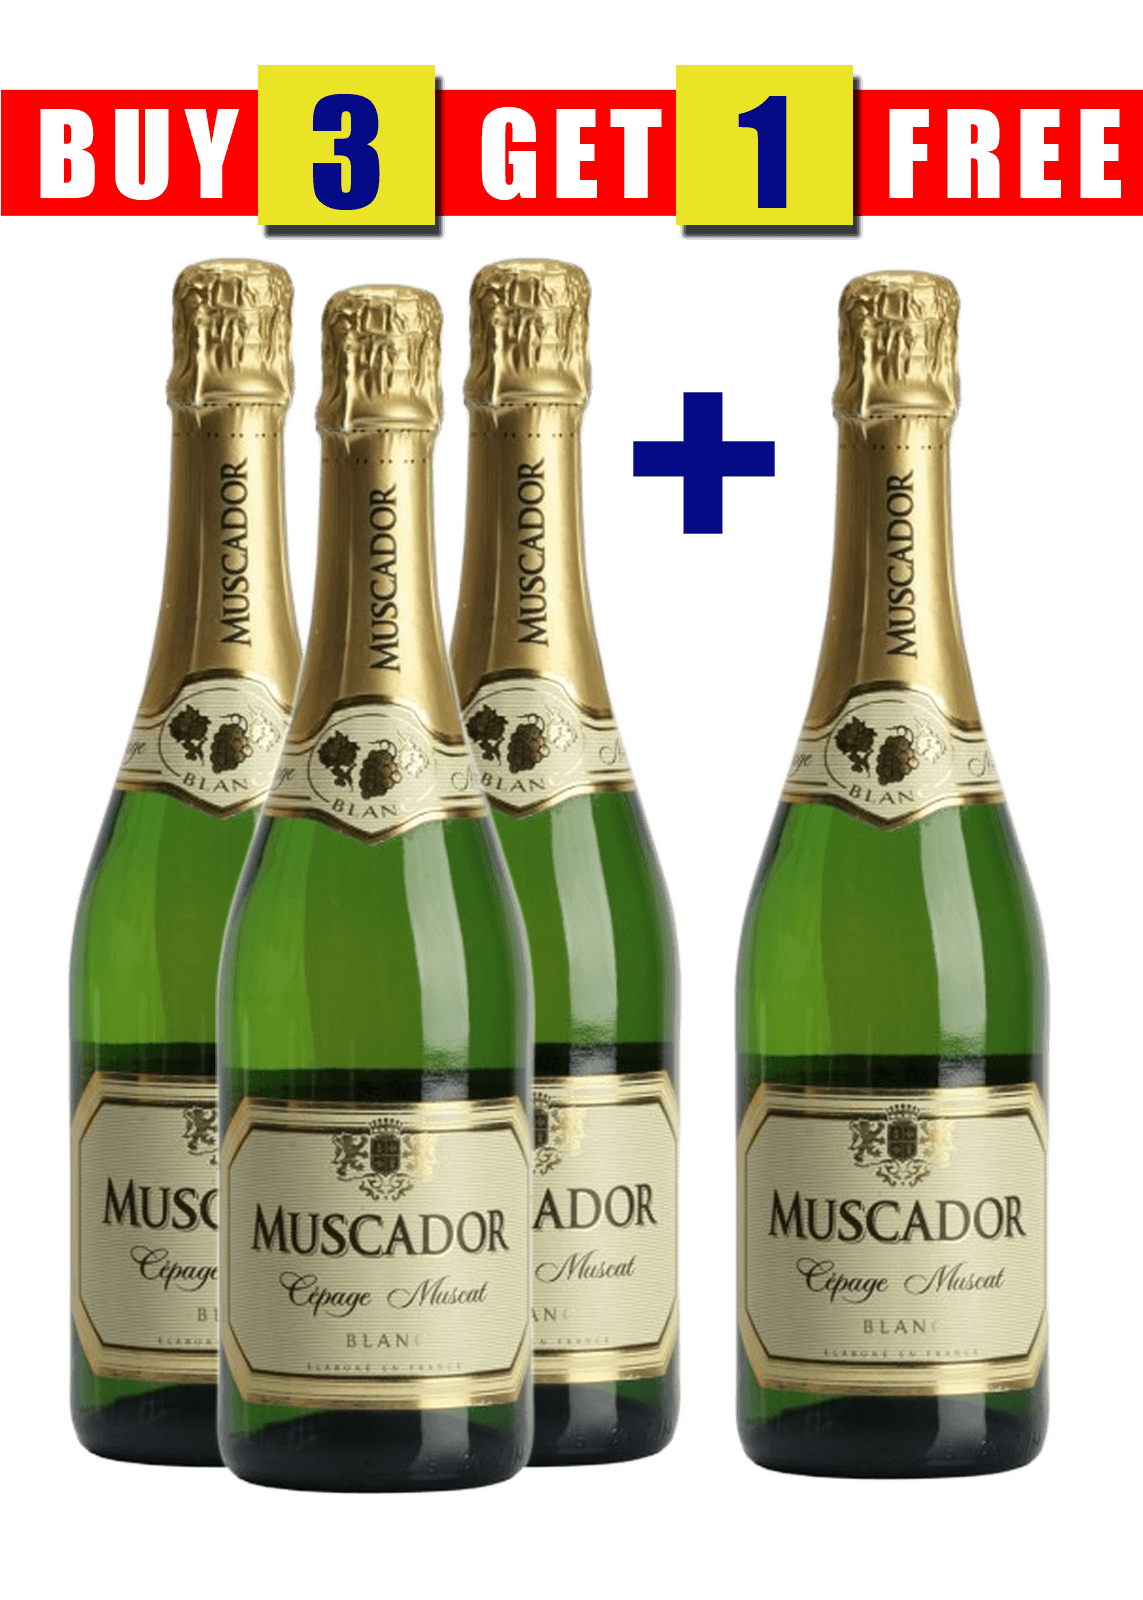 MUSCADOR SPARKLING BLANC 75CL (BUY 3 GET 1 FREE)